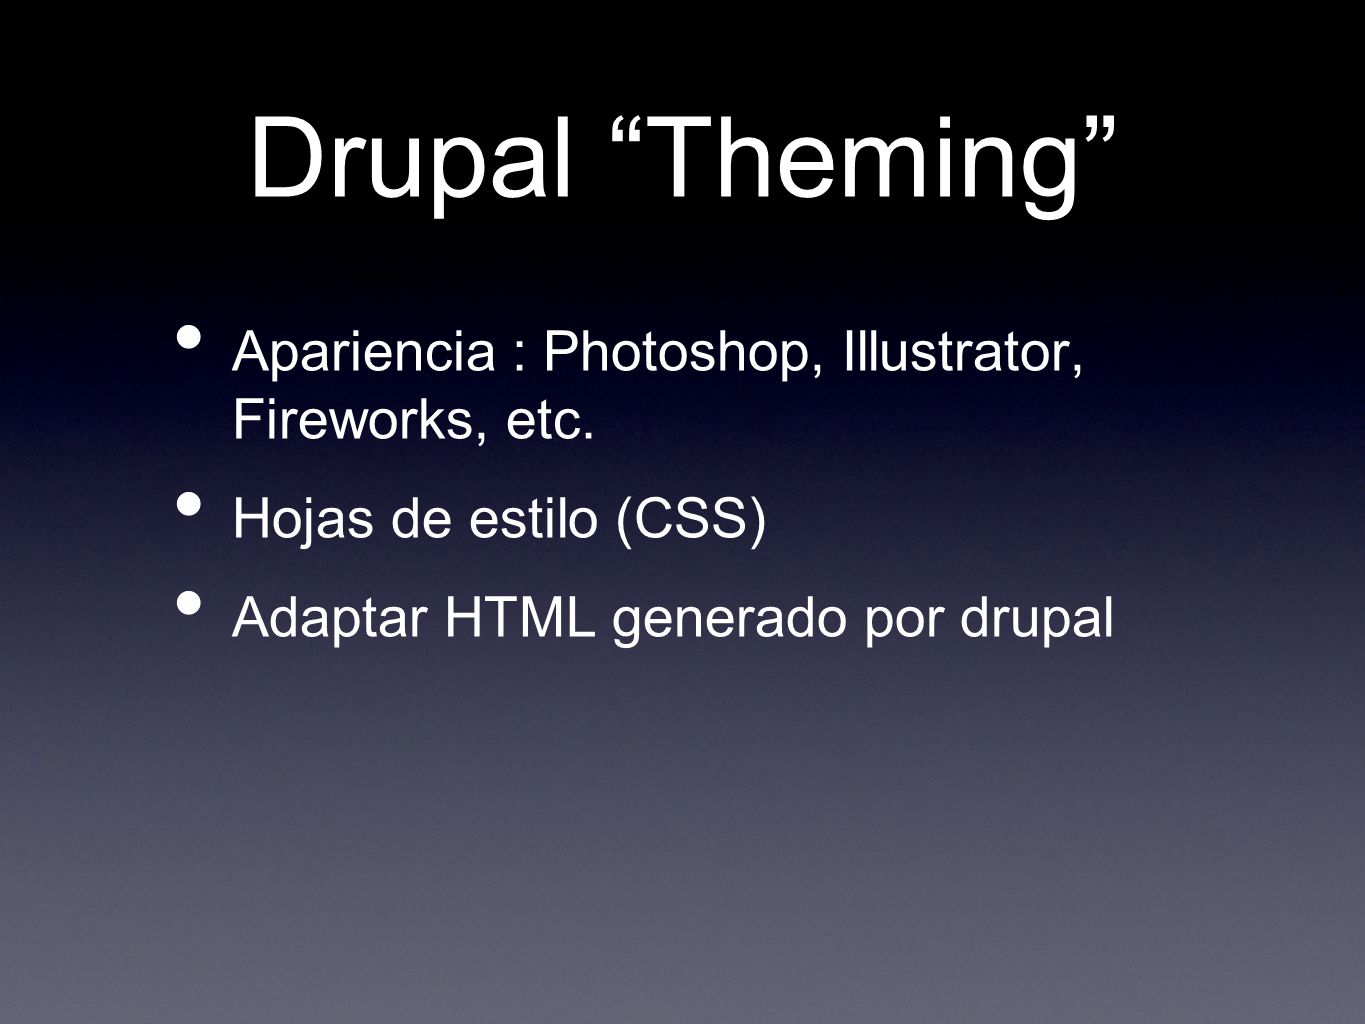 Drupal Theming Apariencia : Photoshop, Illustrator, Fireworks, etc.